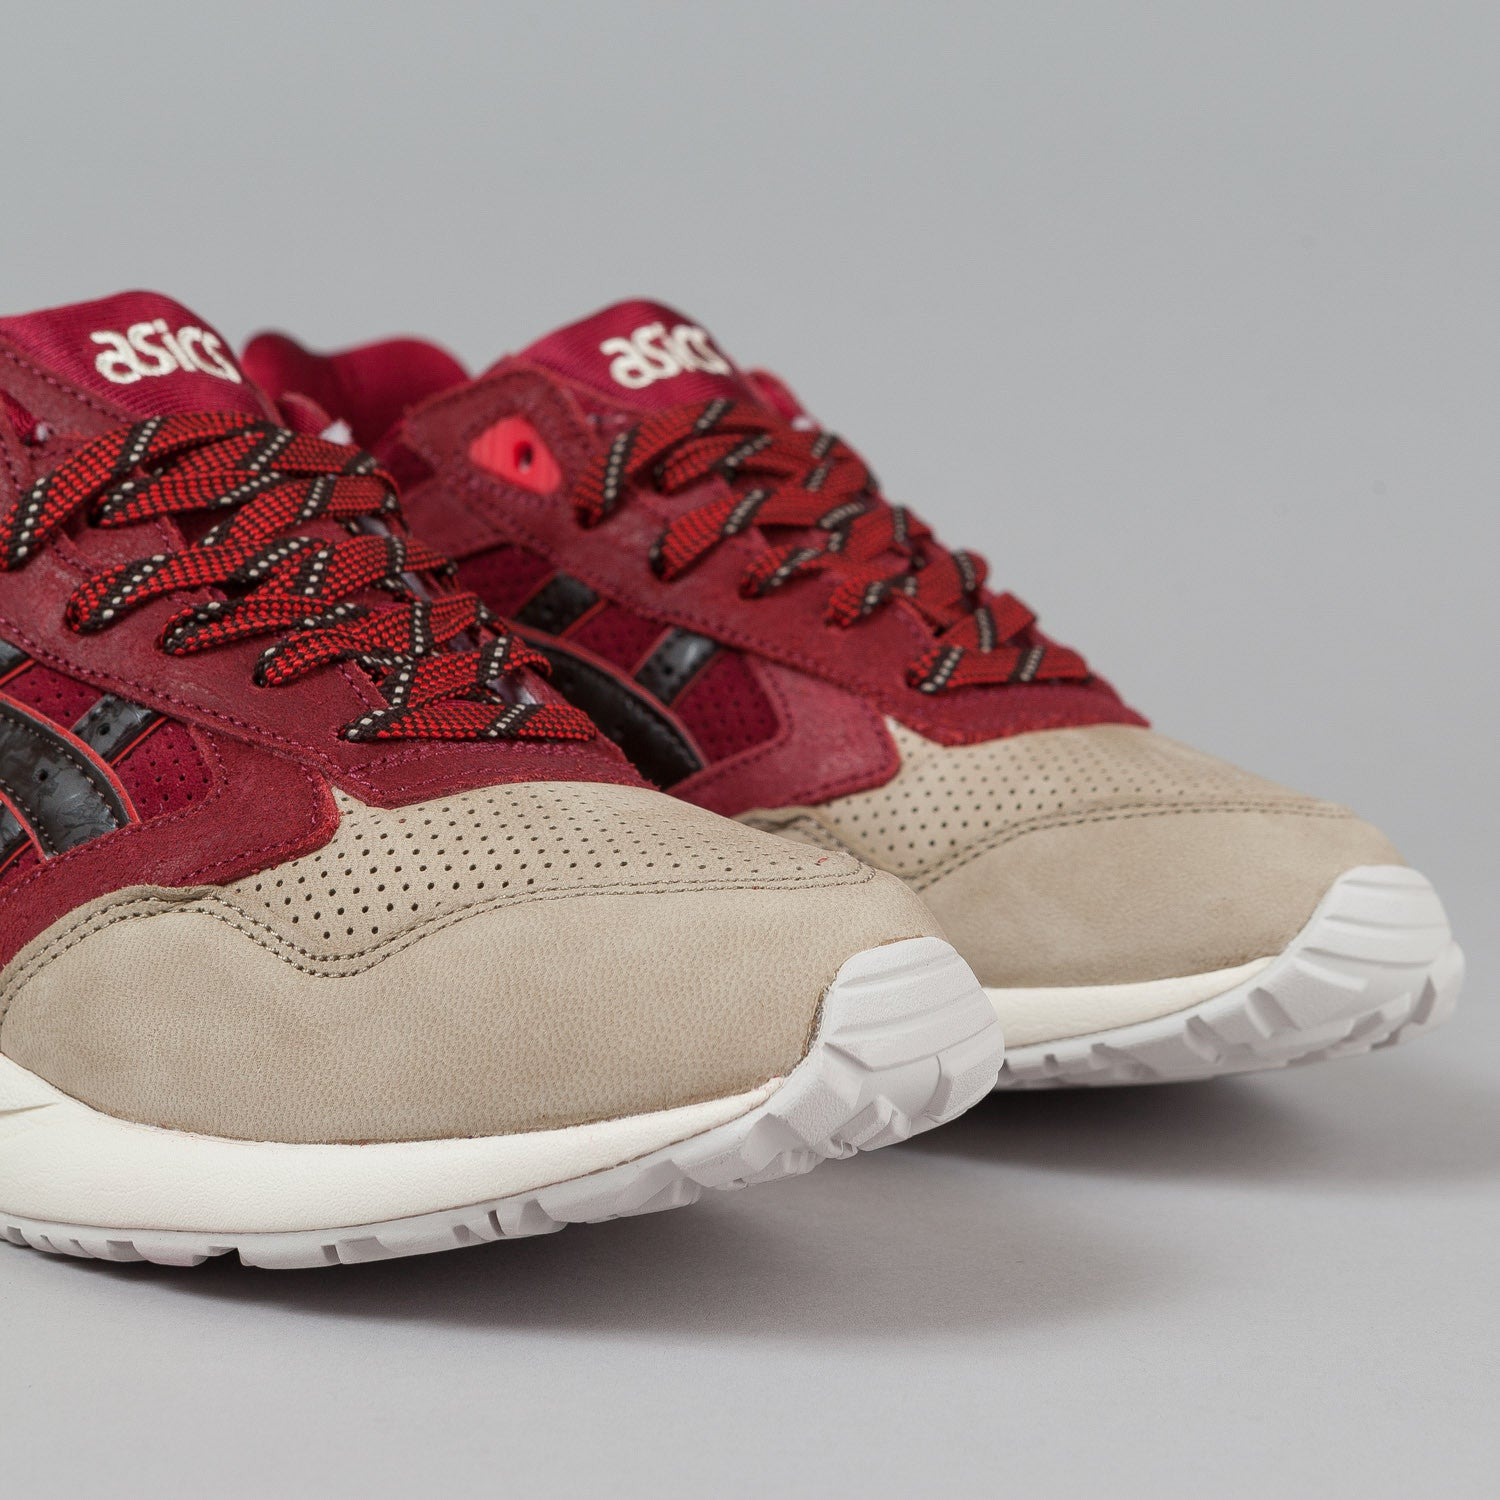 "Asics Gel Saga Shoes Burgundy / Dark Brown ""Christmas Pack"""